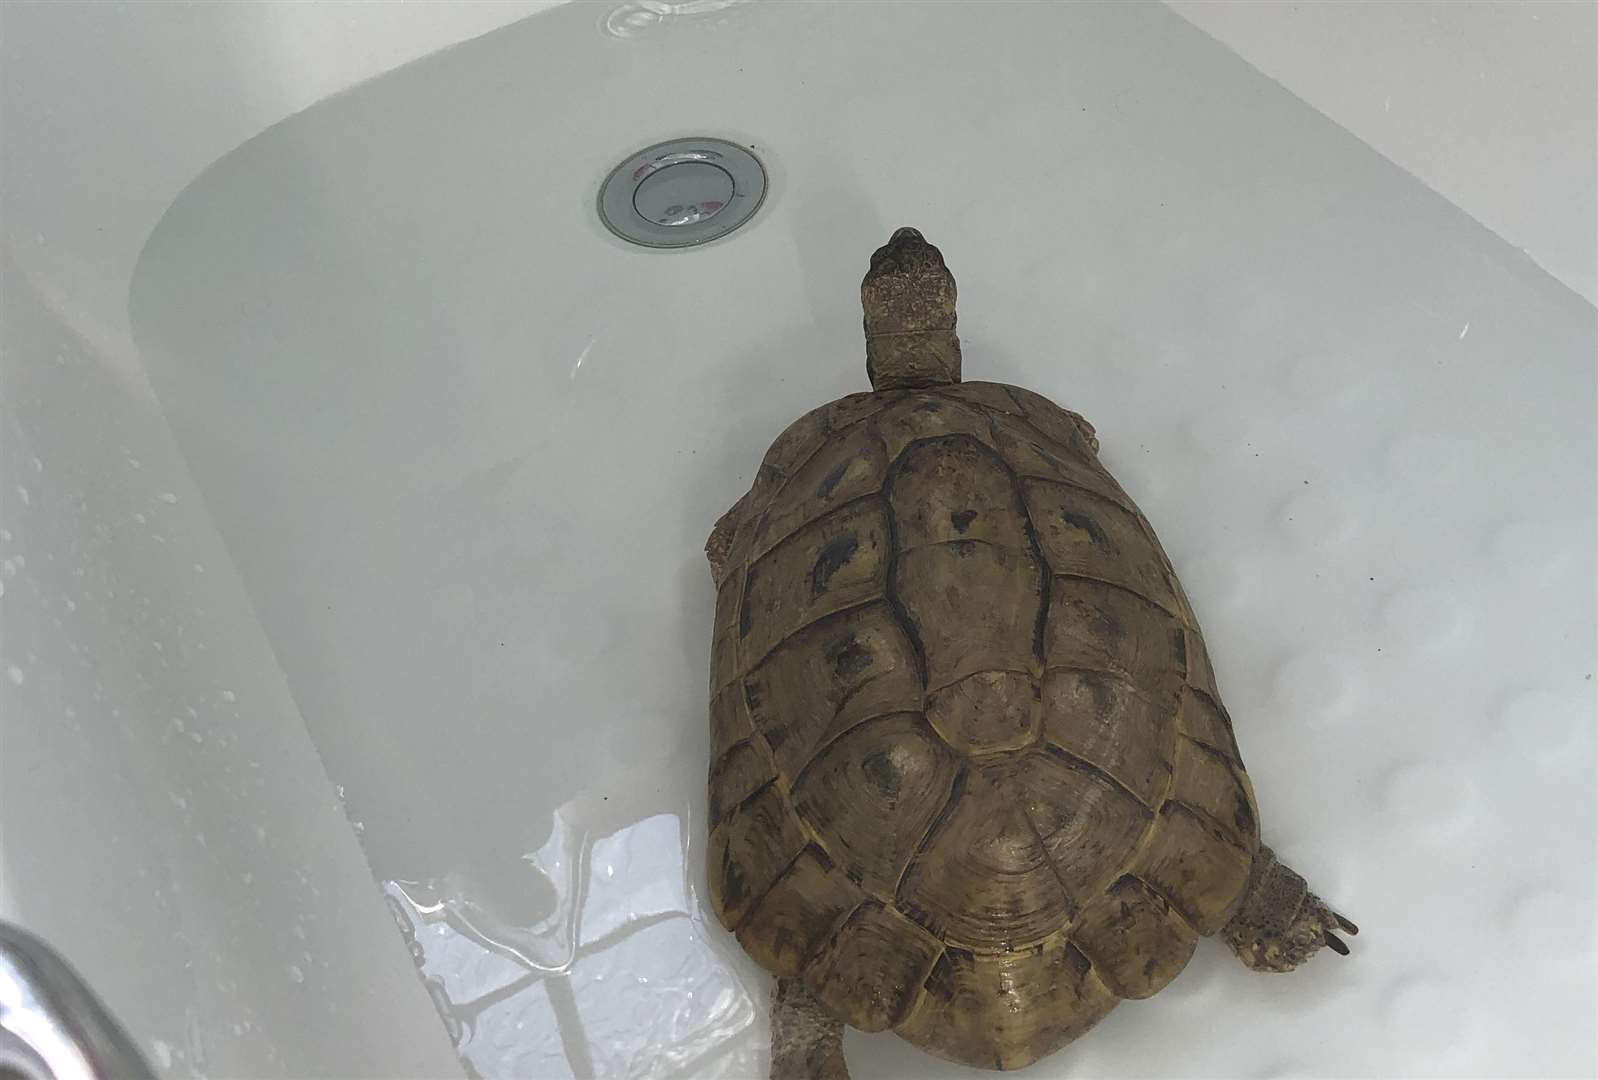 A tortoise cooling down in a bath